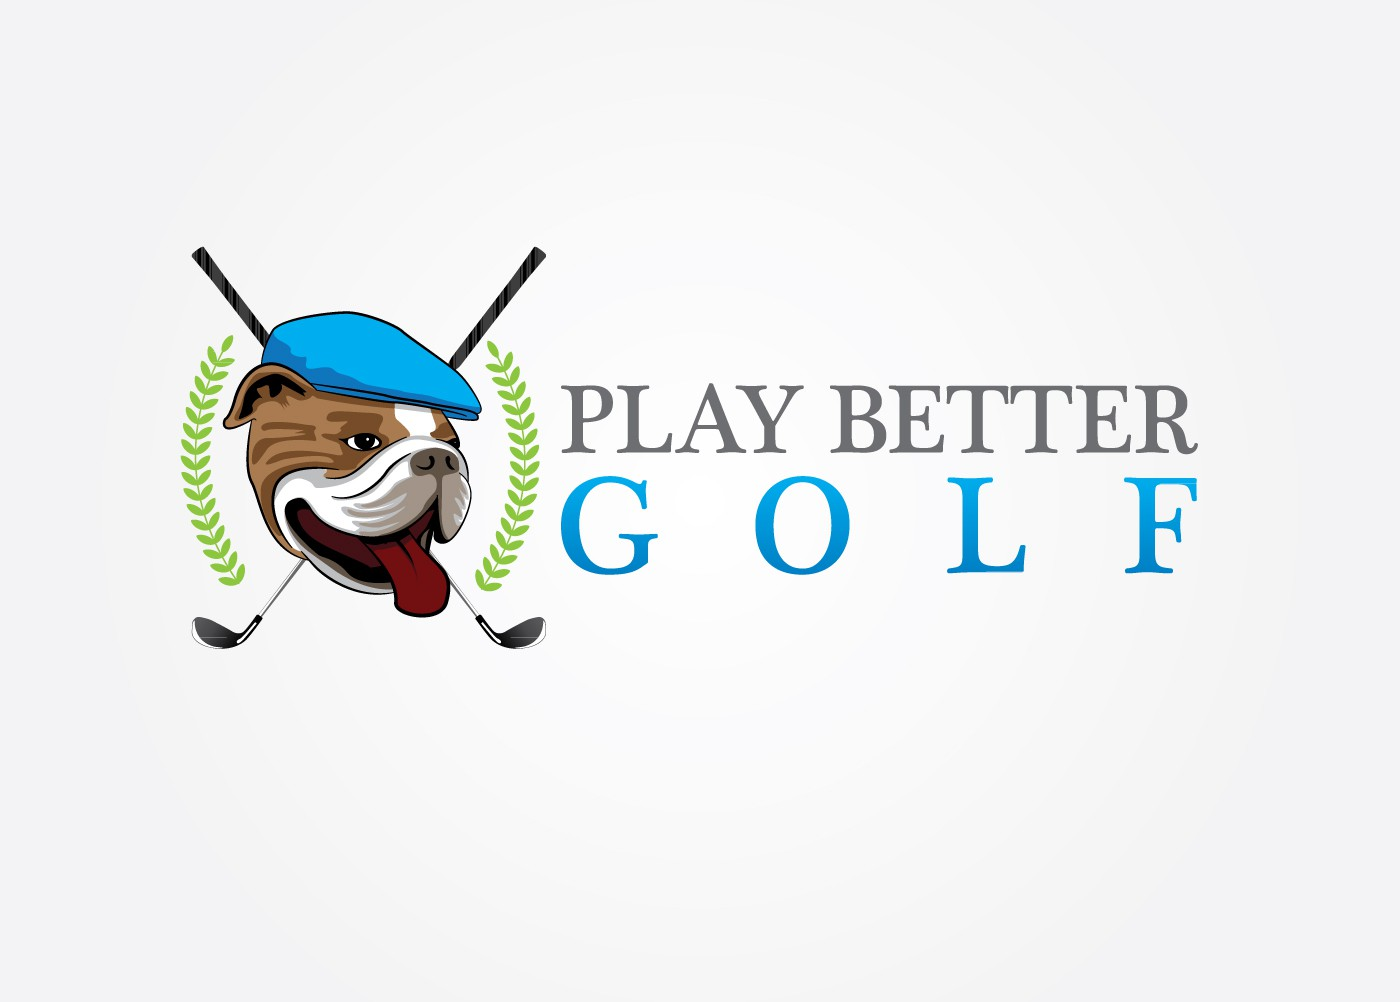 Create a fun logo for a golf instructional video website!